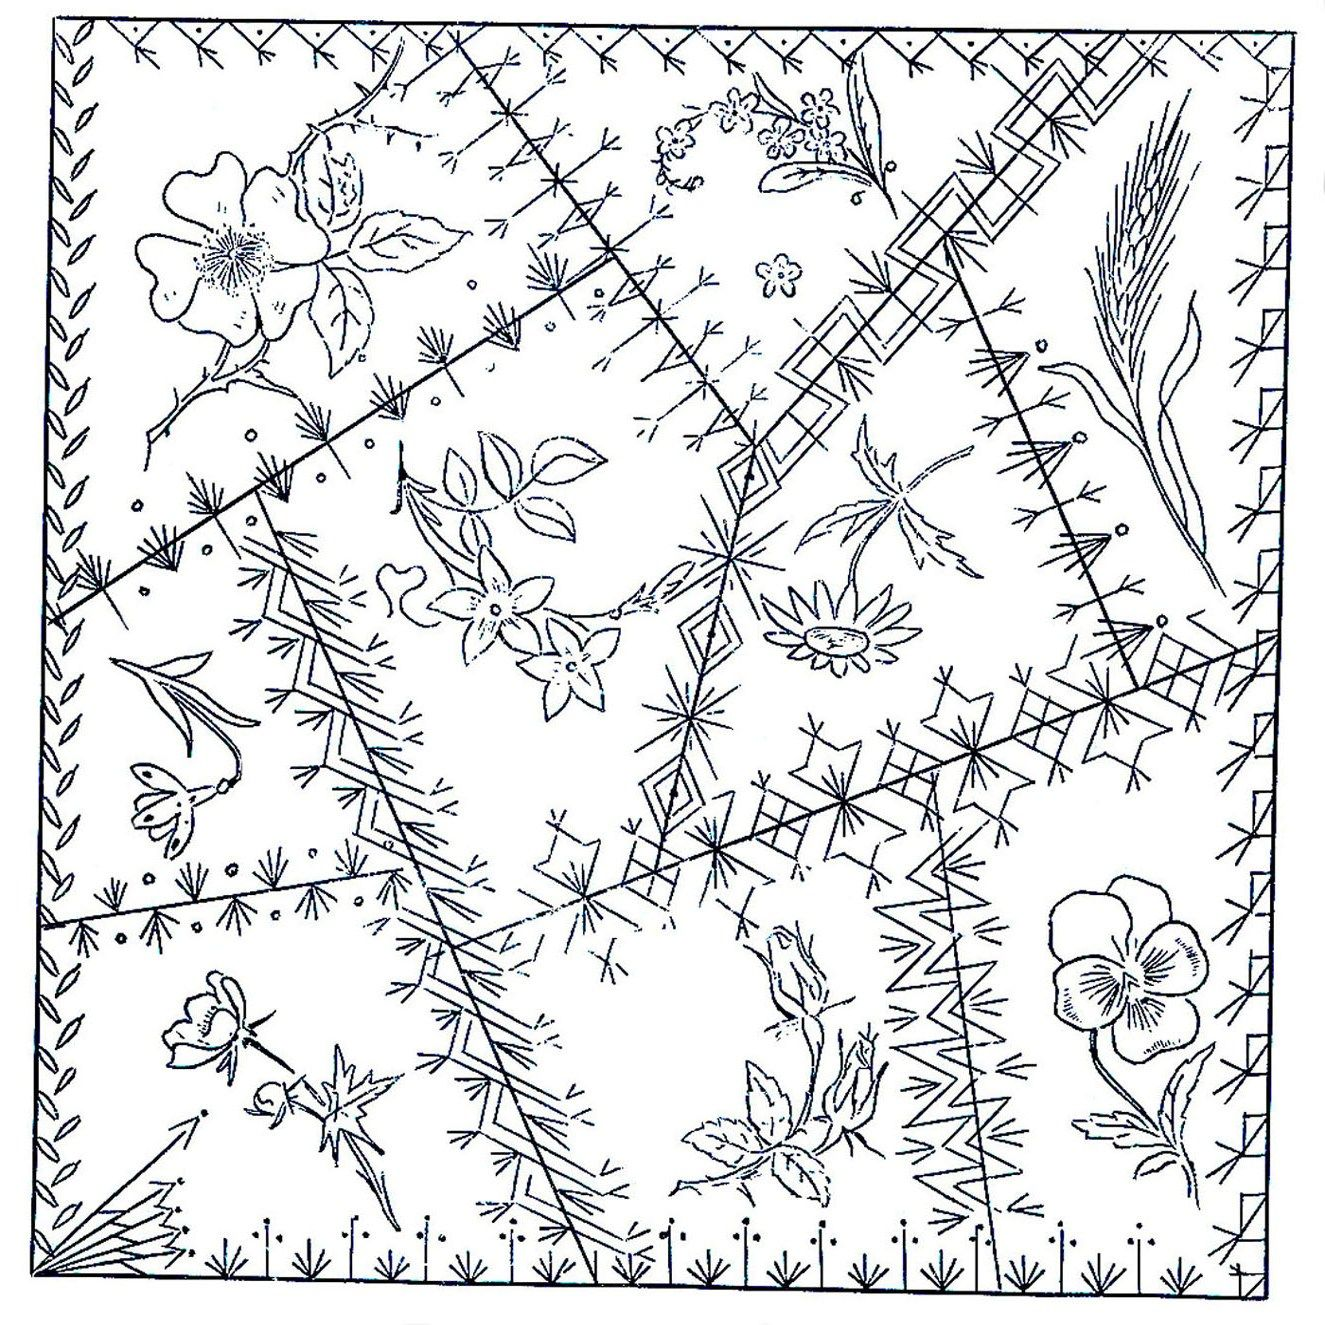 Find This Pin And More On Crazy Quilts, Patches, Projects